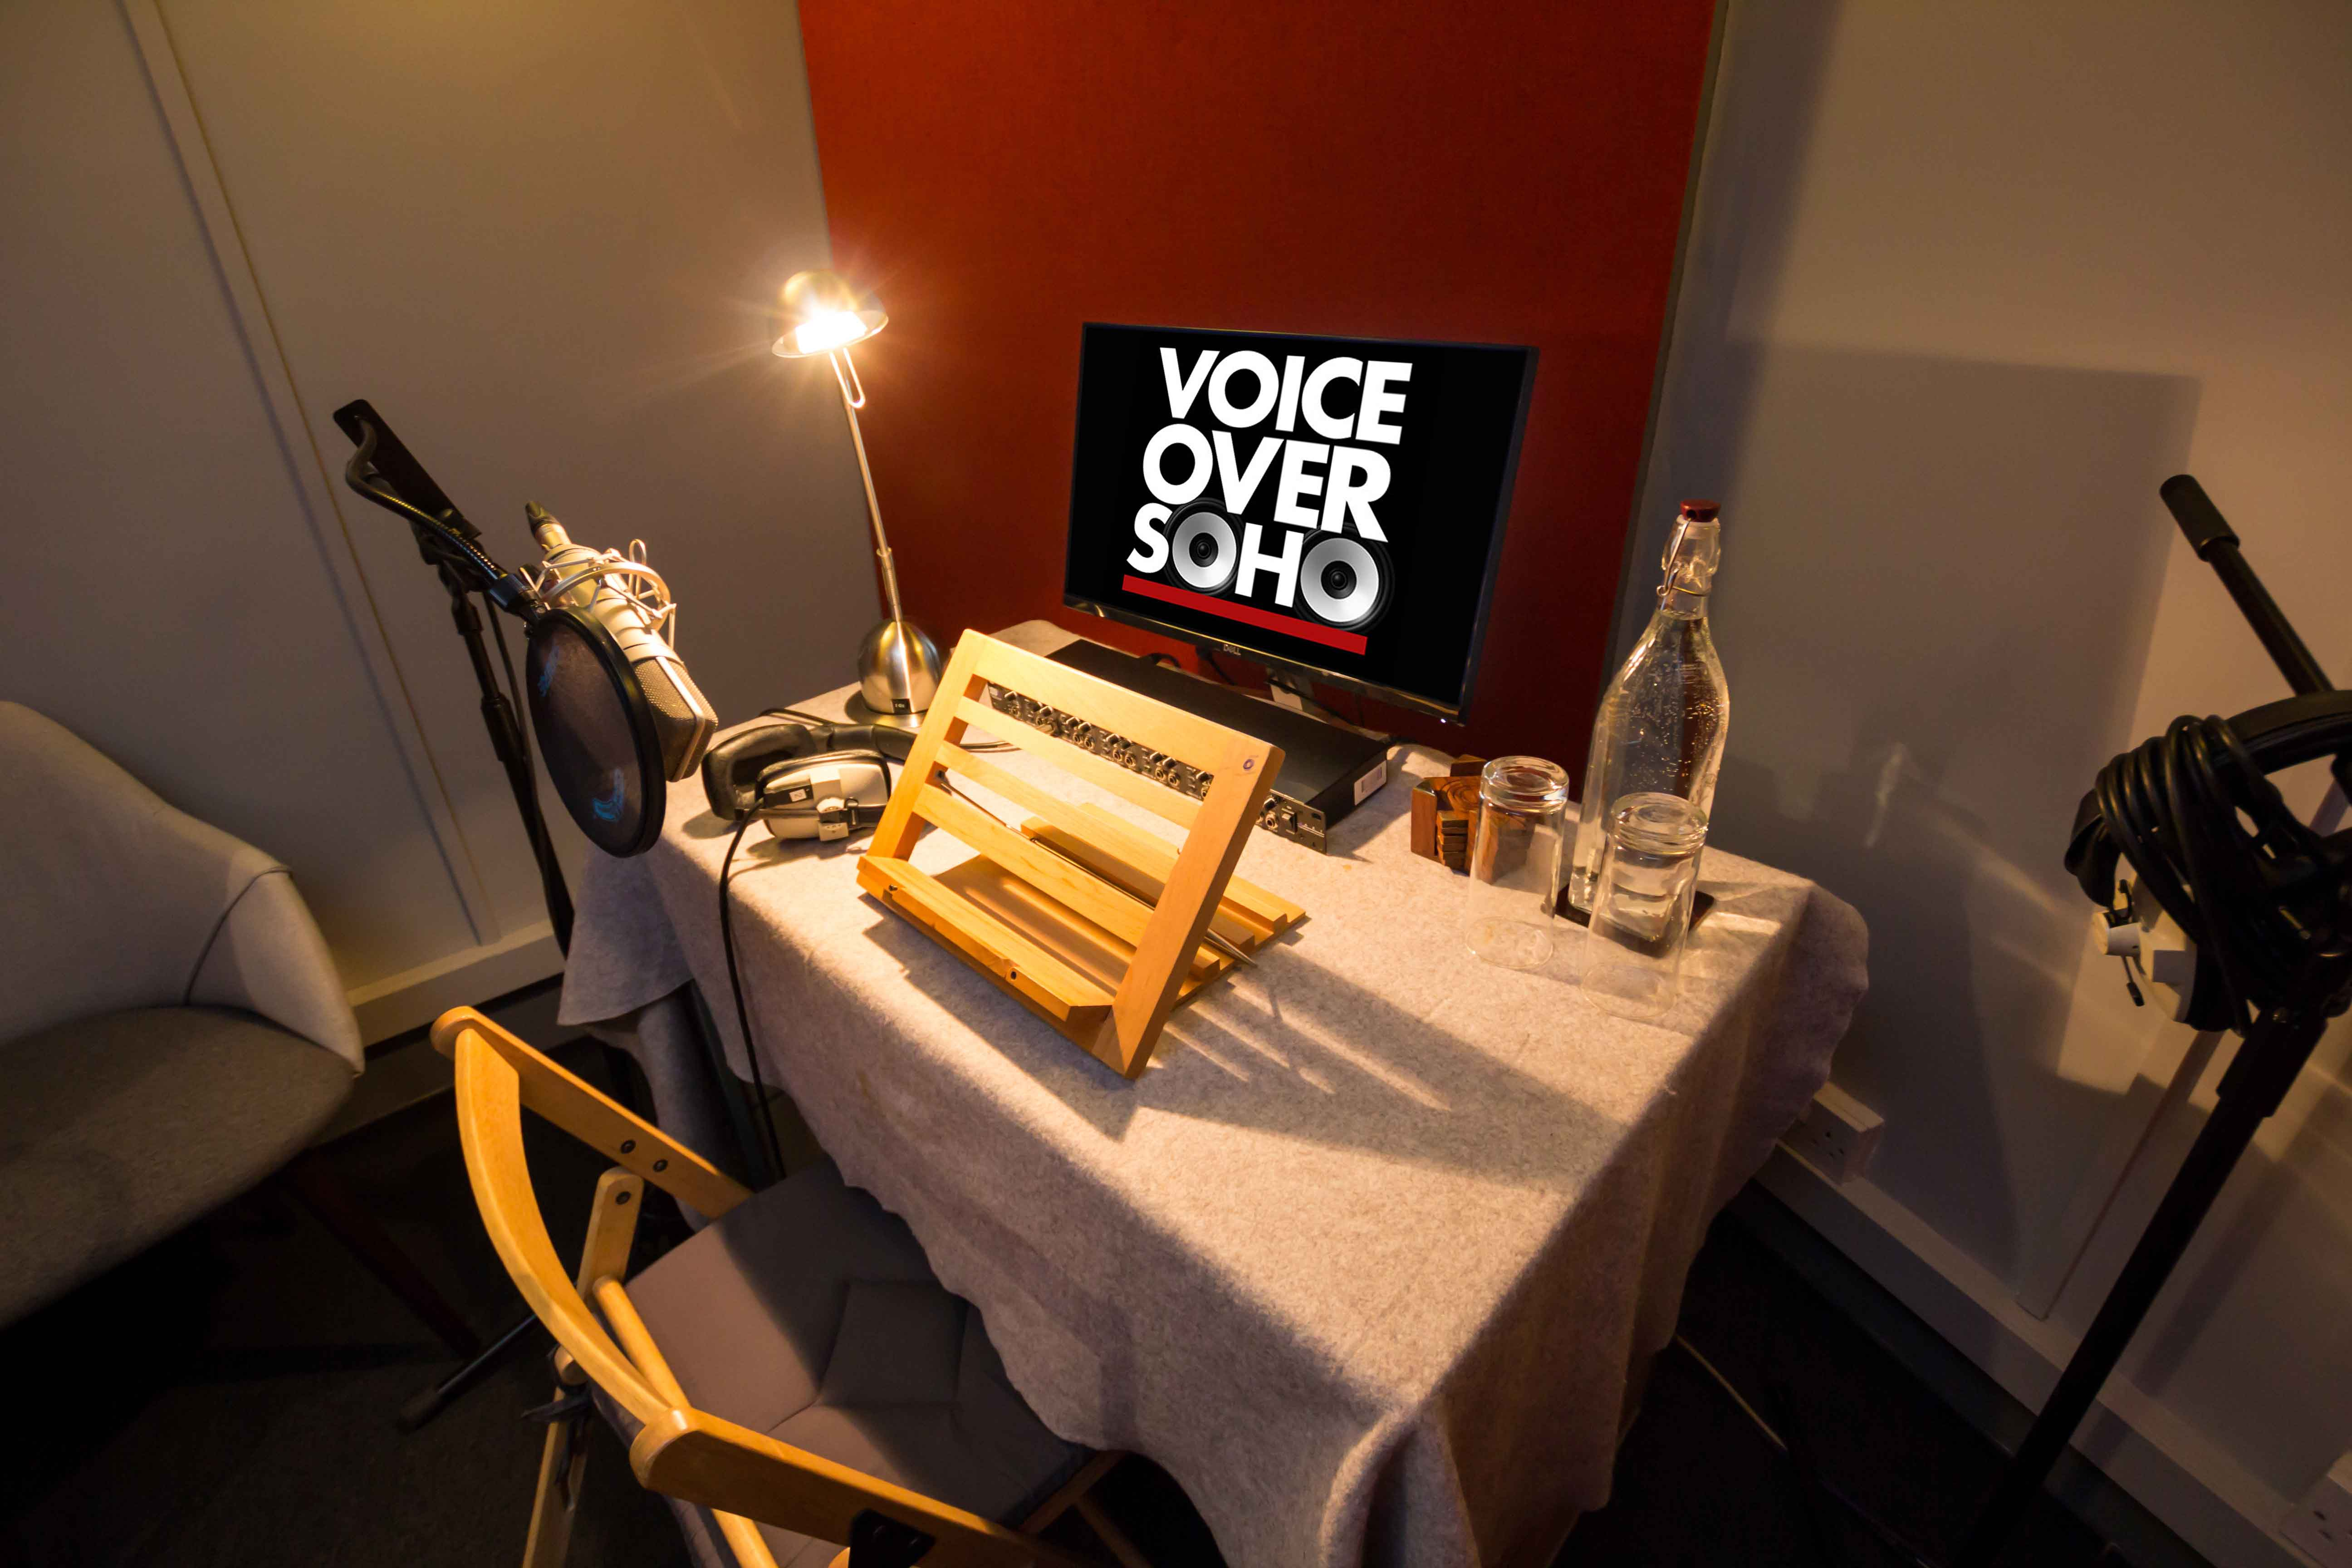 About Voiceover Soho Audio Production Studio London